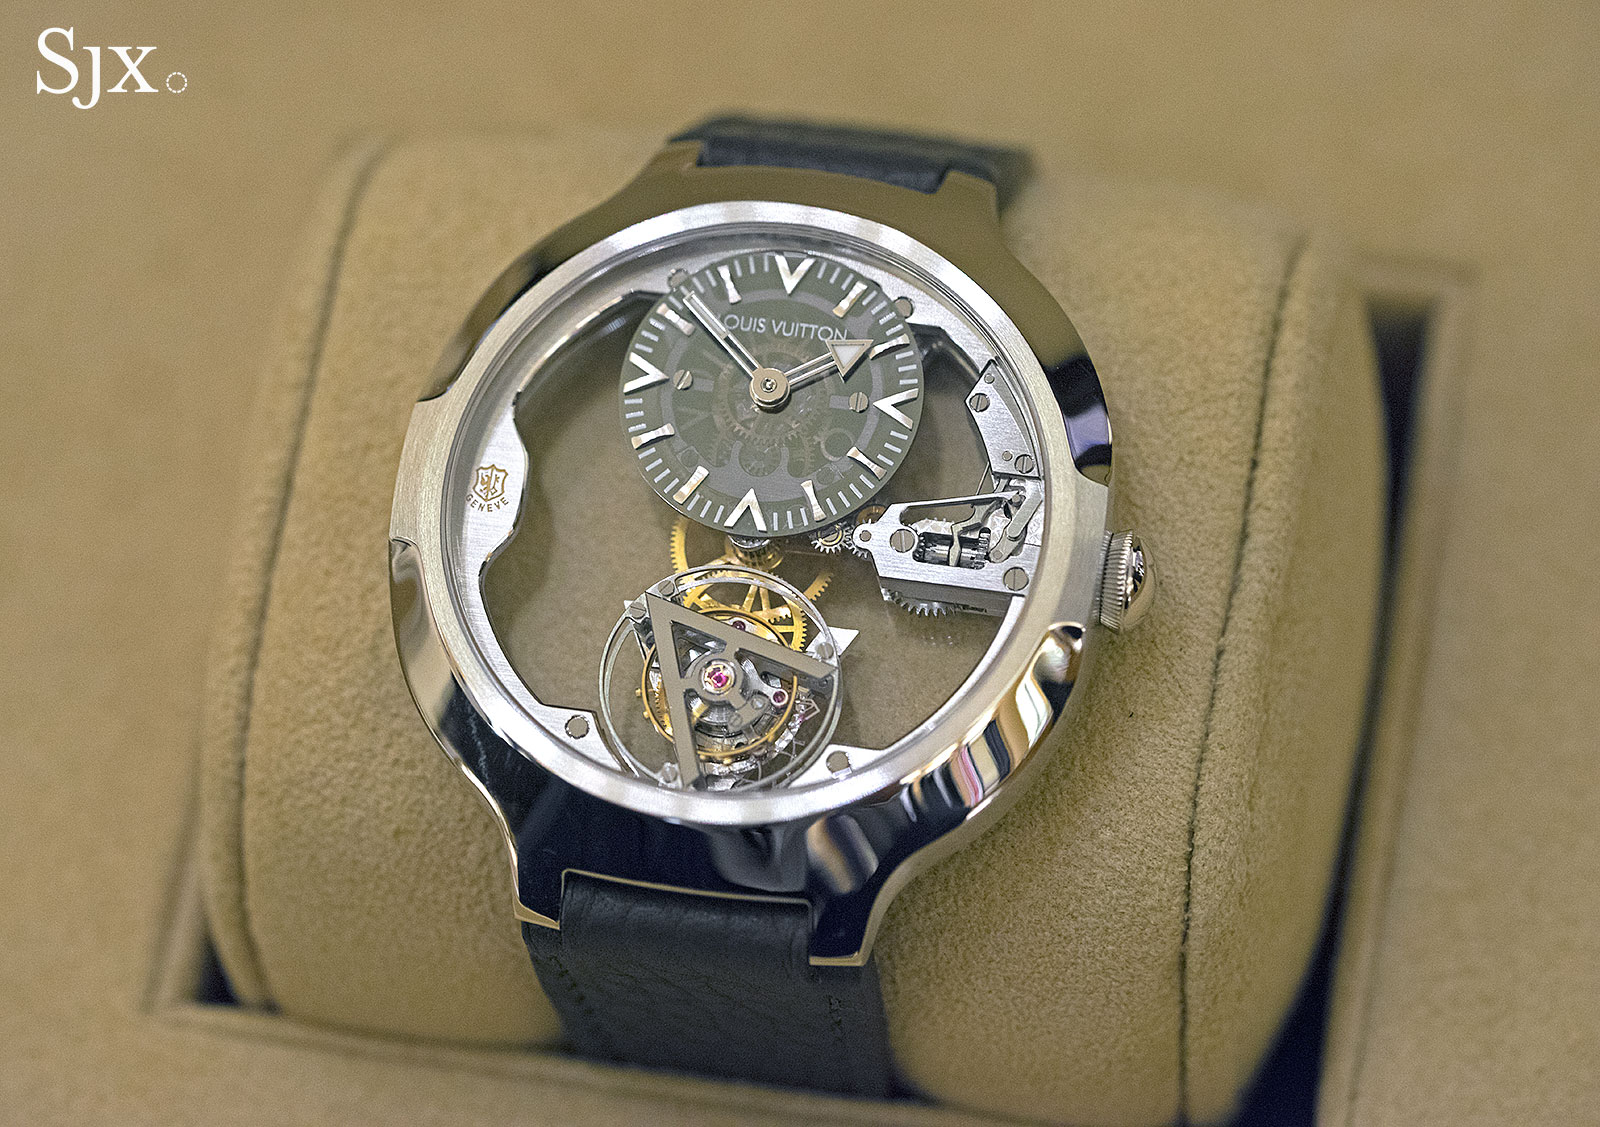 Louis Vuitton Flying Tourbillon Poinçon de Genève 1